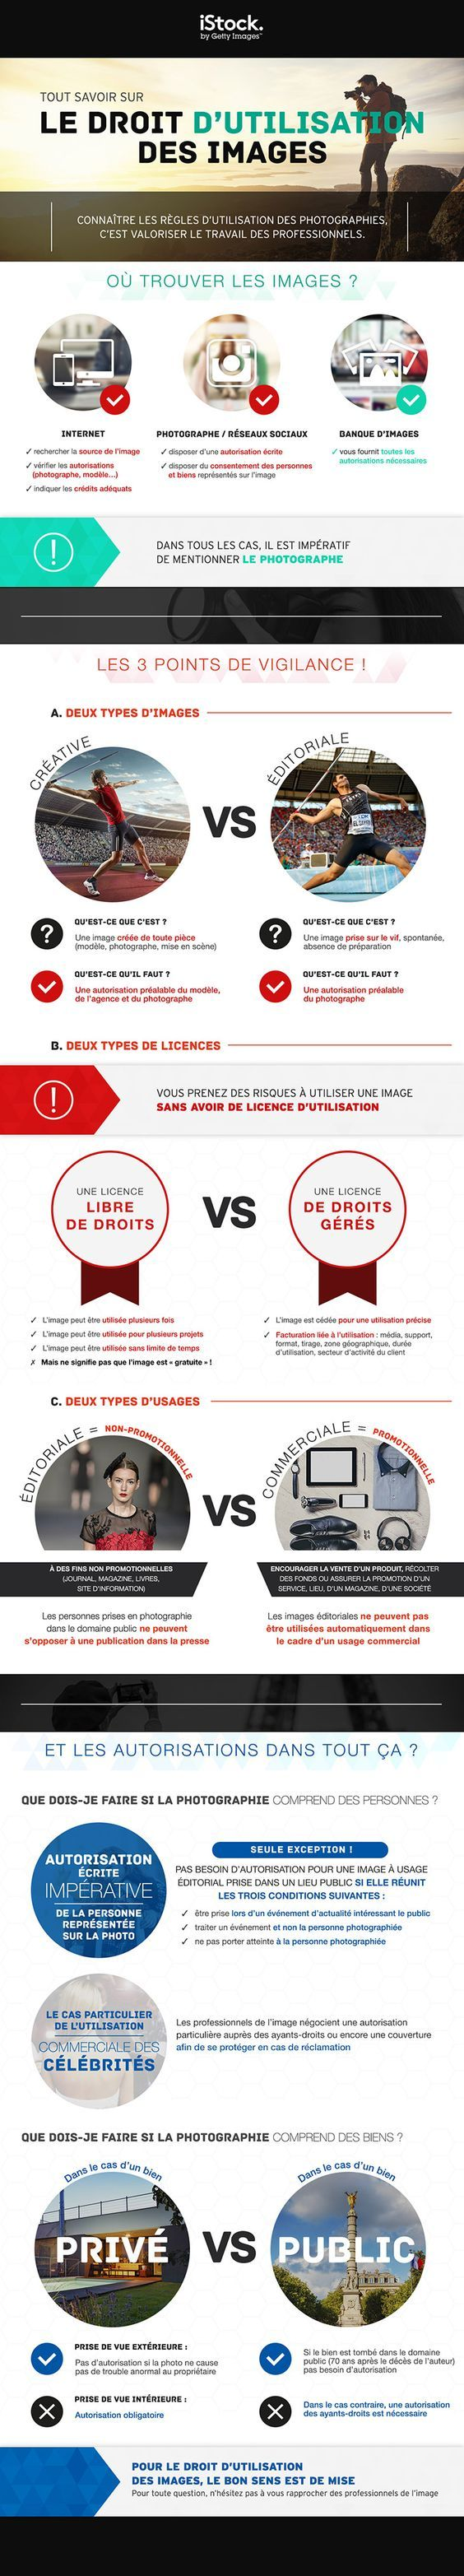 droits-images-istock-infographie-journal-du-cm #infographie: